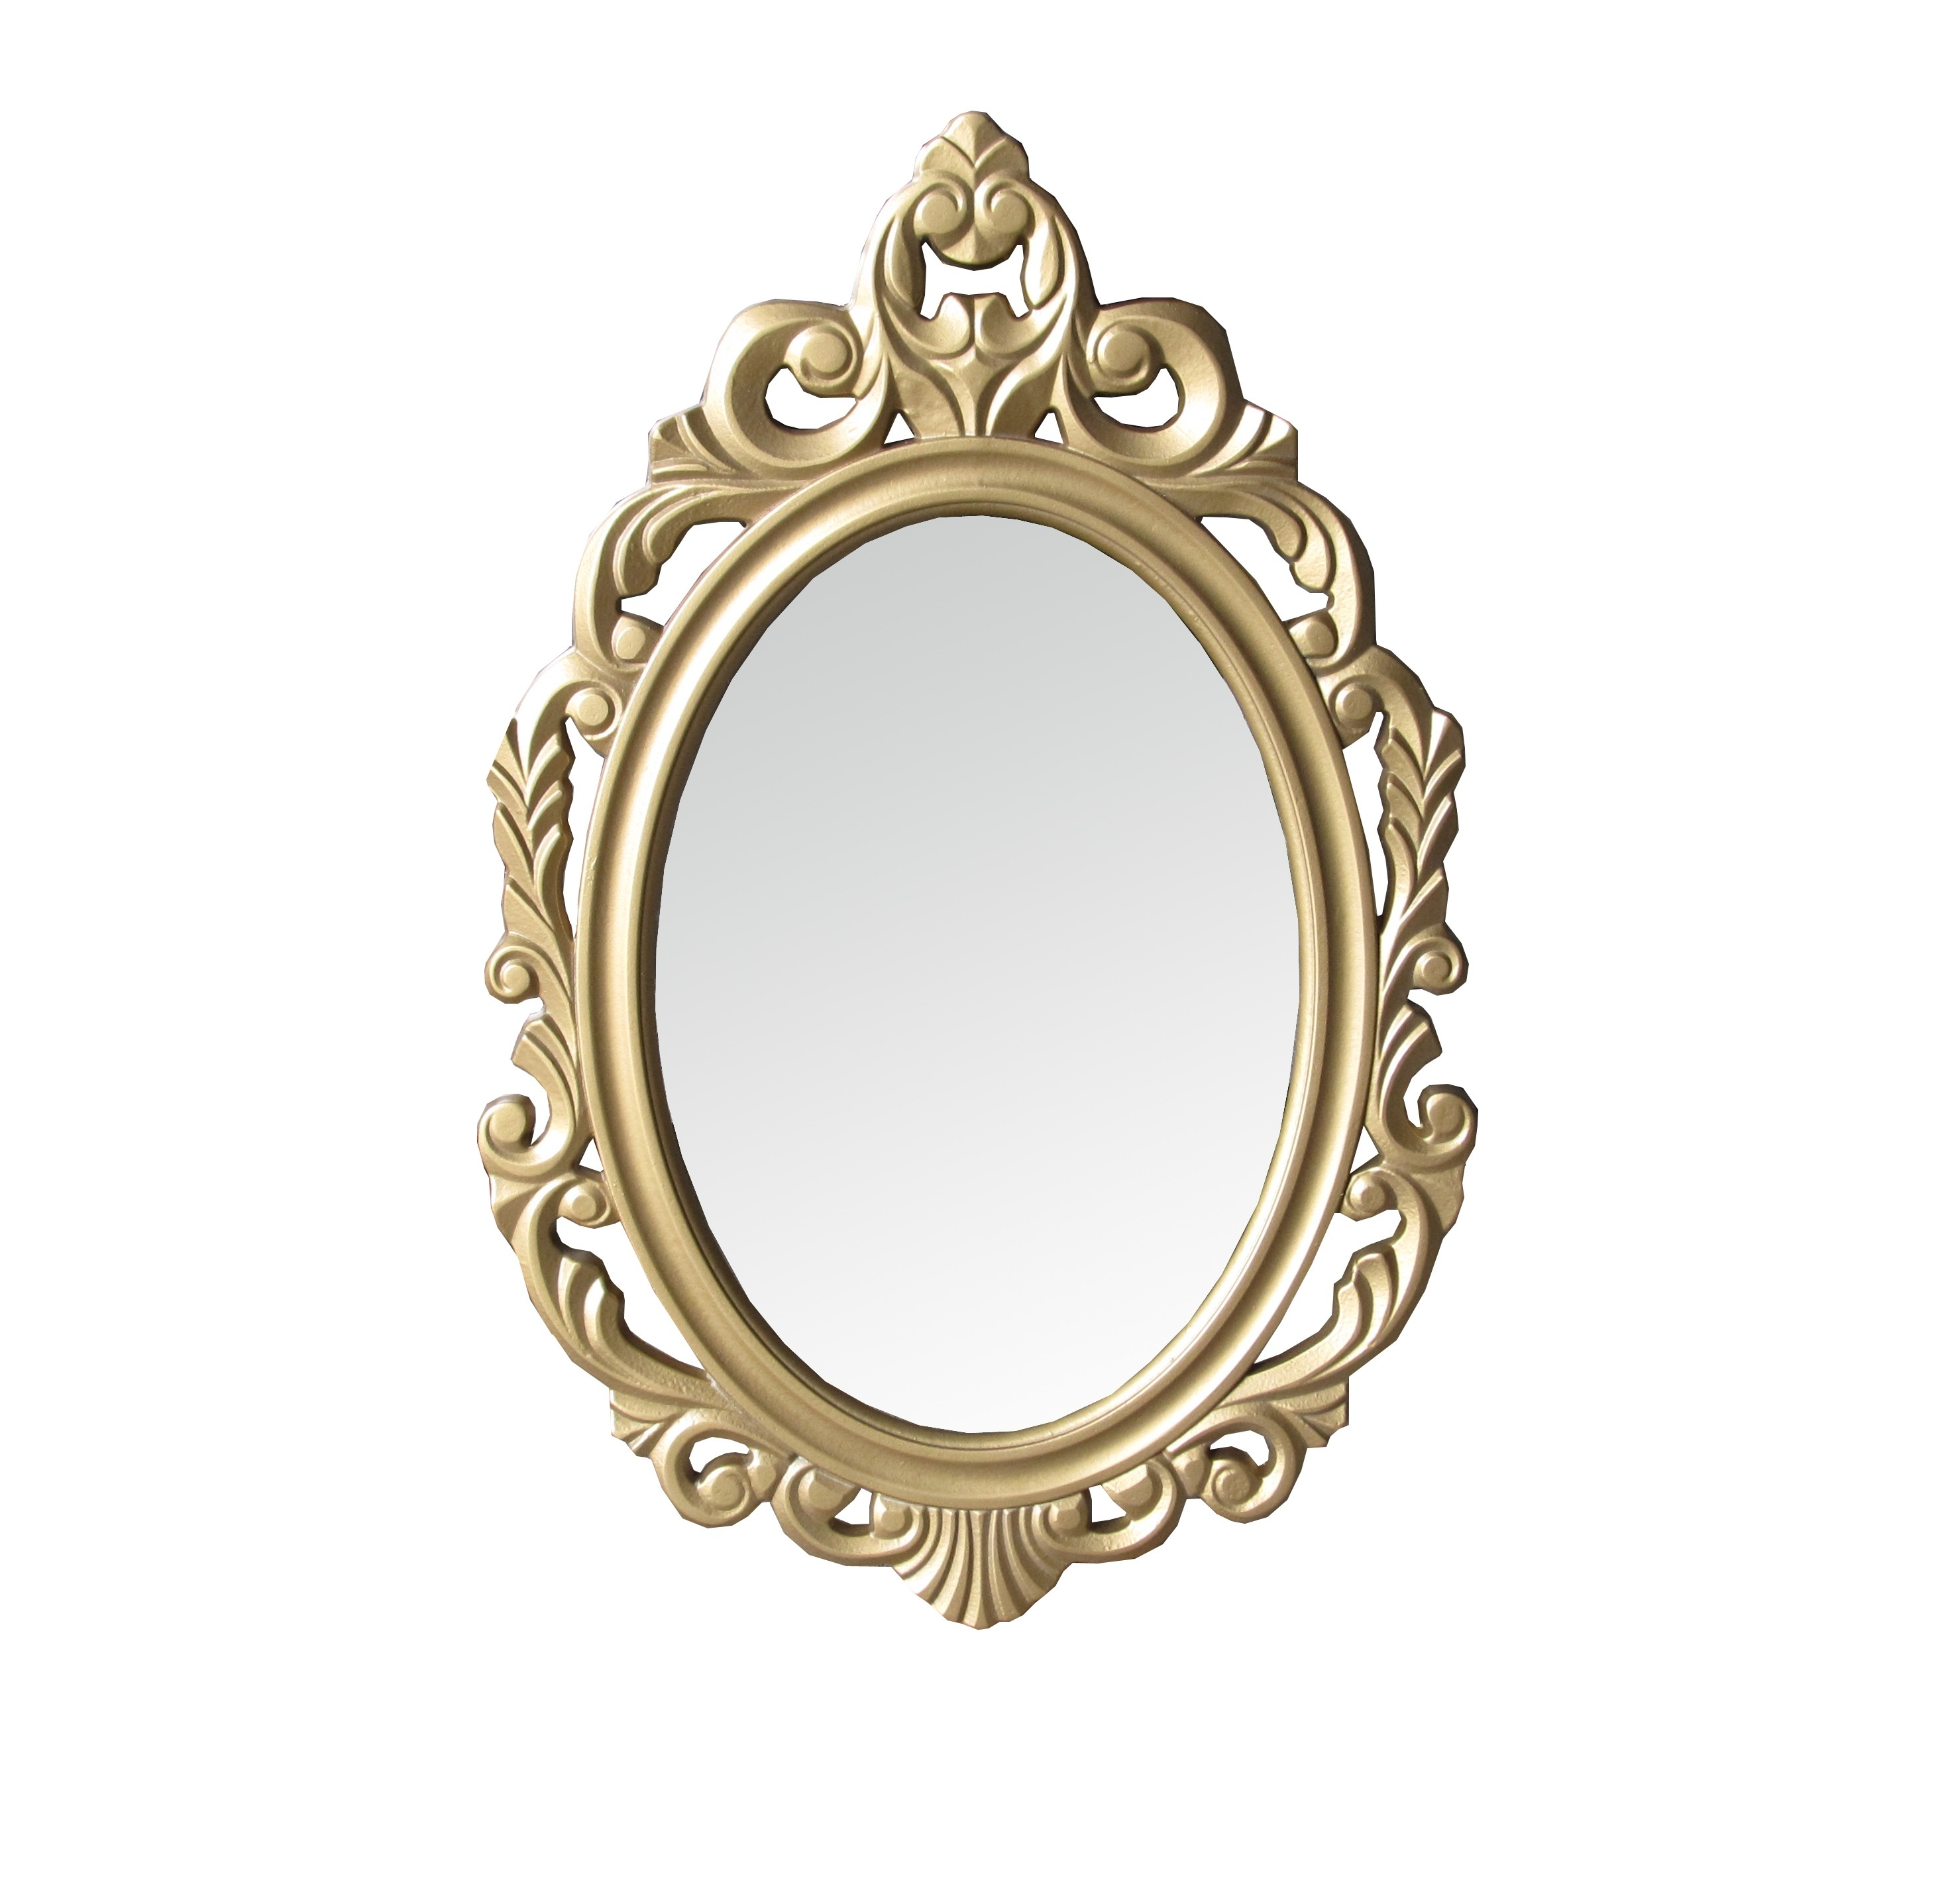 Interior Decoration Shab Chic Ornate Gold Oval Wall Mirror With Regard To Gold Shabby Chic Mirror (View 13 of 15)